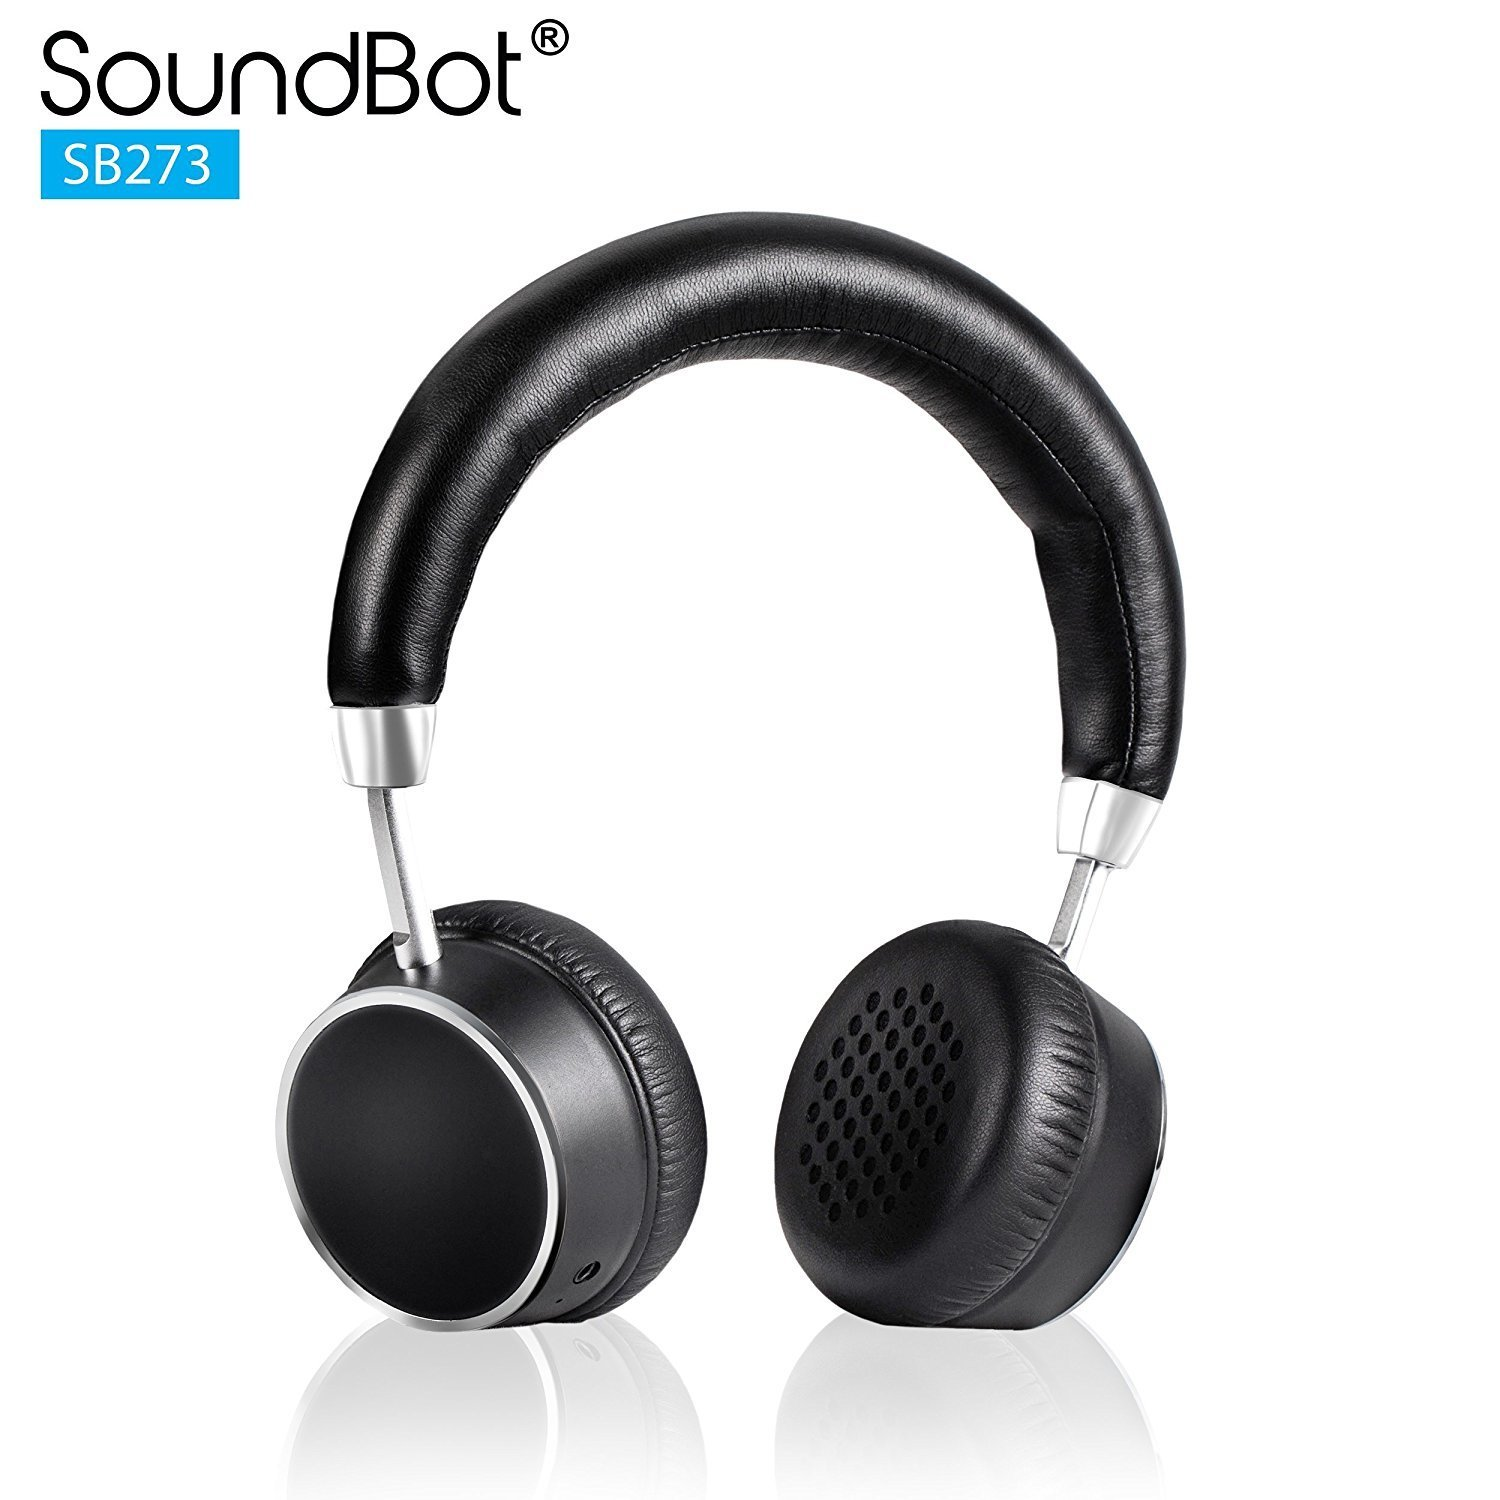 SoundBot SB273 Premium HD Stereo Bluetooth Wireless Headset Headphone